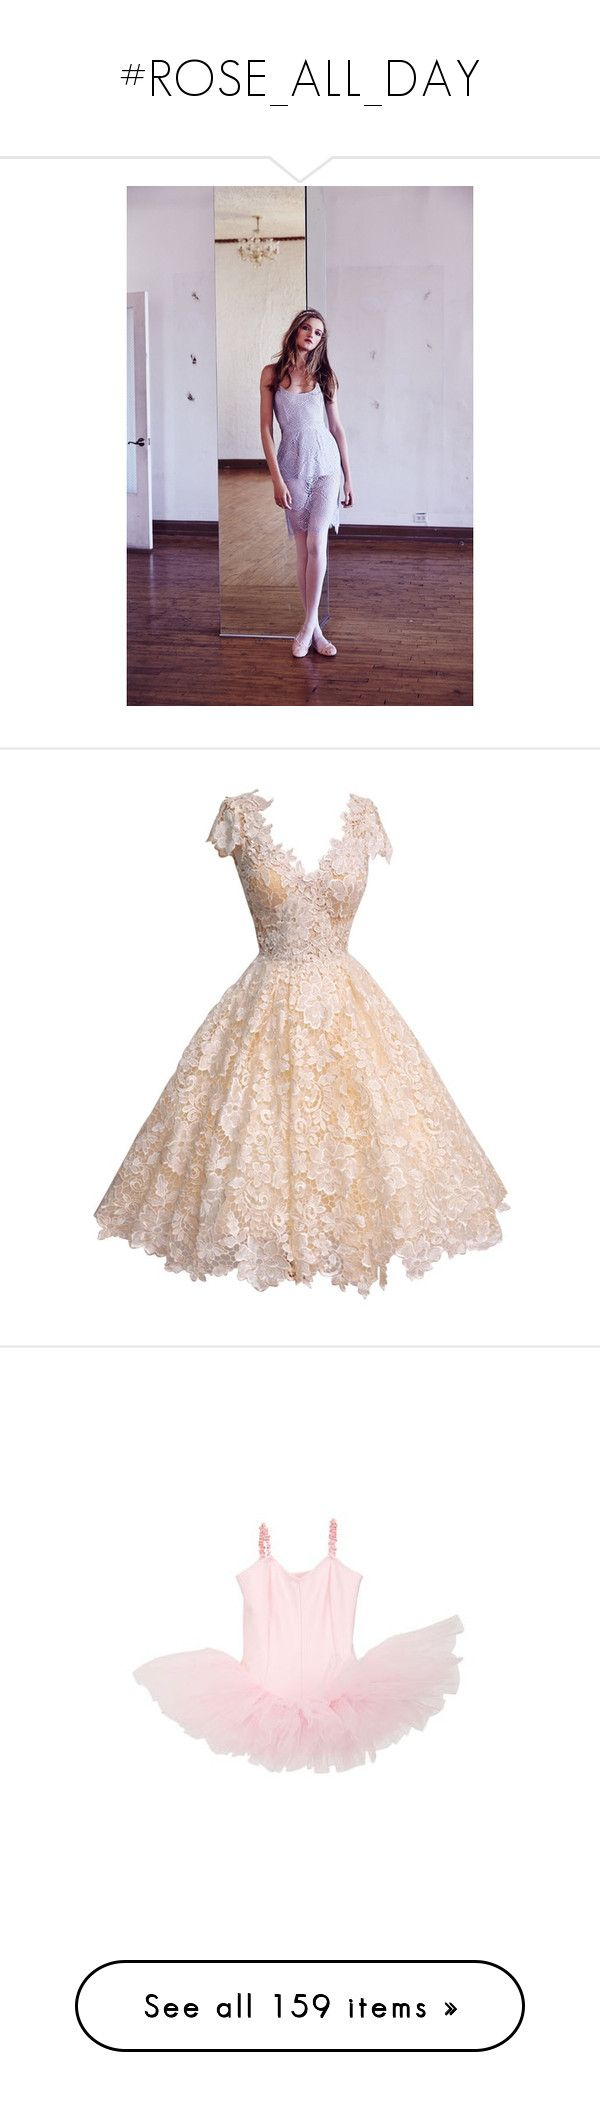 """""""#ROSE_ALL_DAY"""" by nygogi ❤ liked on Polyvore featuring dresses, short dresses, vestidos, gowns, vintage cocktail dresses, short sleeve dress, lace midi dress, midi cocktail dress, short pink dress and Vanity Fair"""